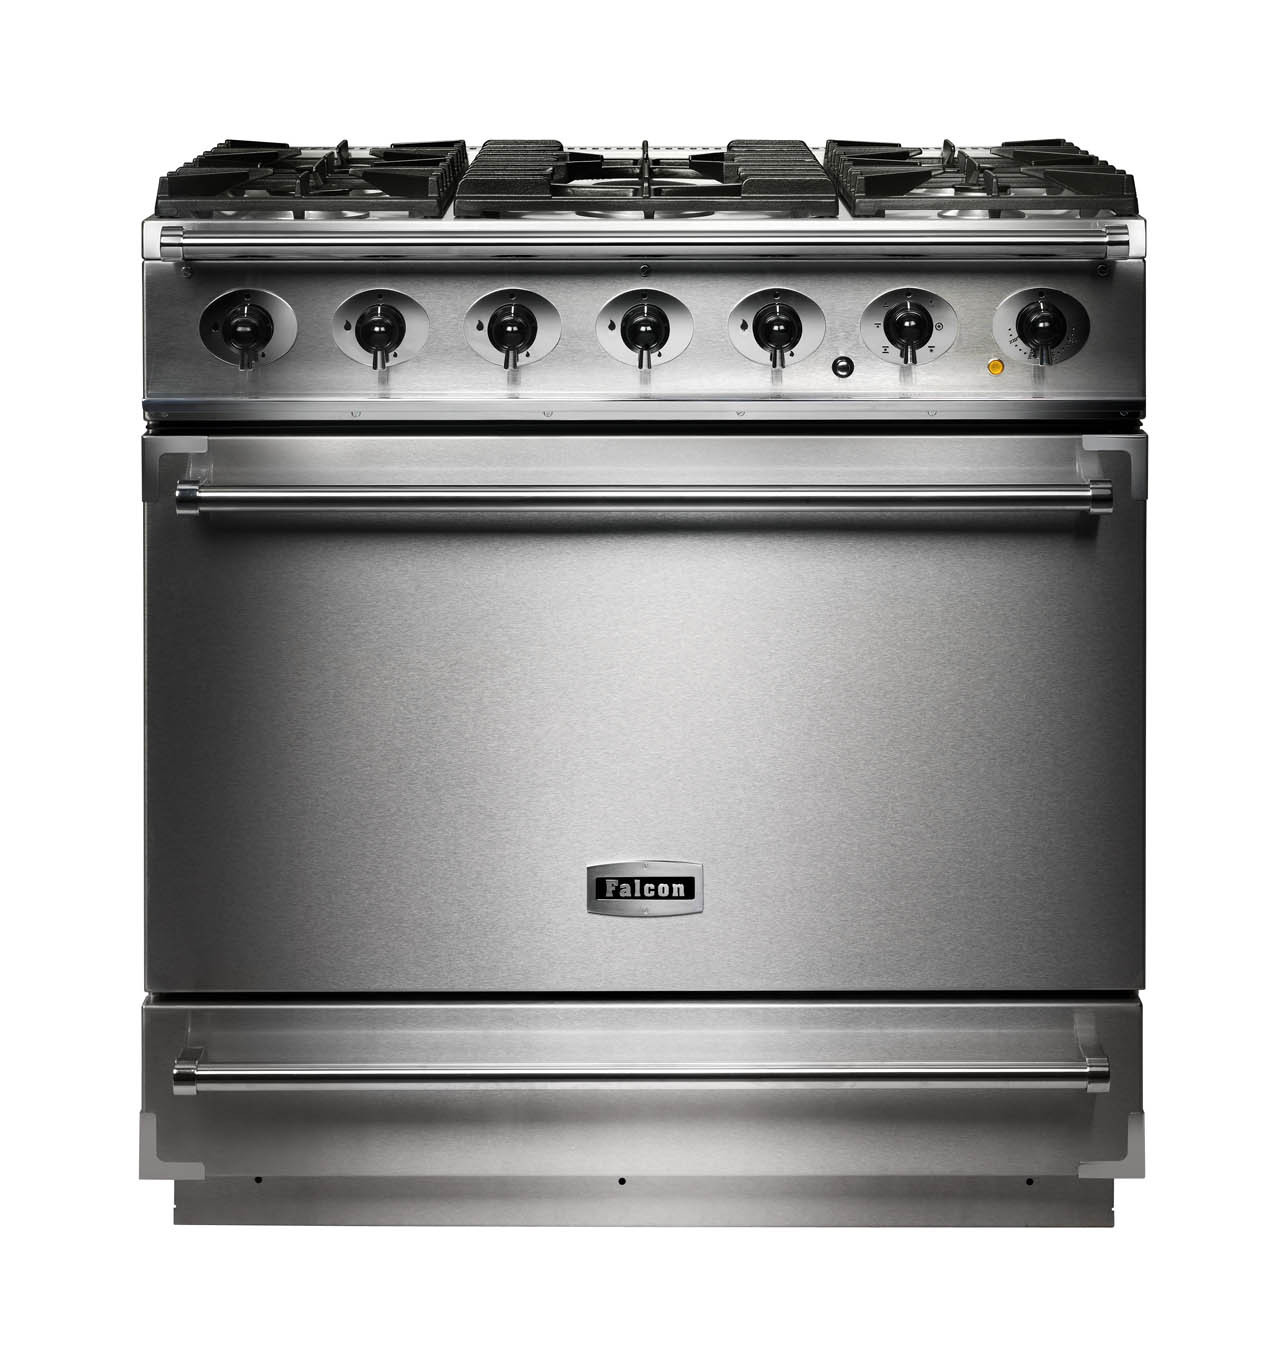 Falcon 900S Dual Fuel Stainless Steel Range Cooker with Matt Pan Supports